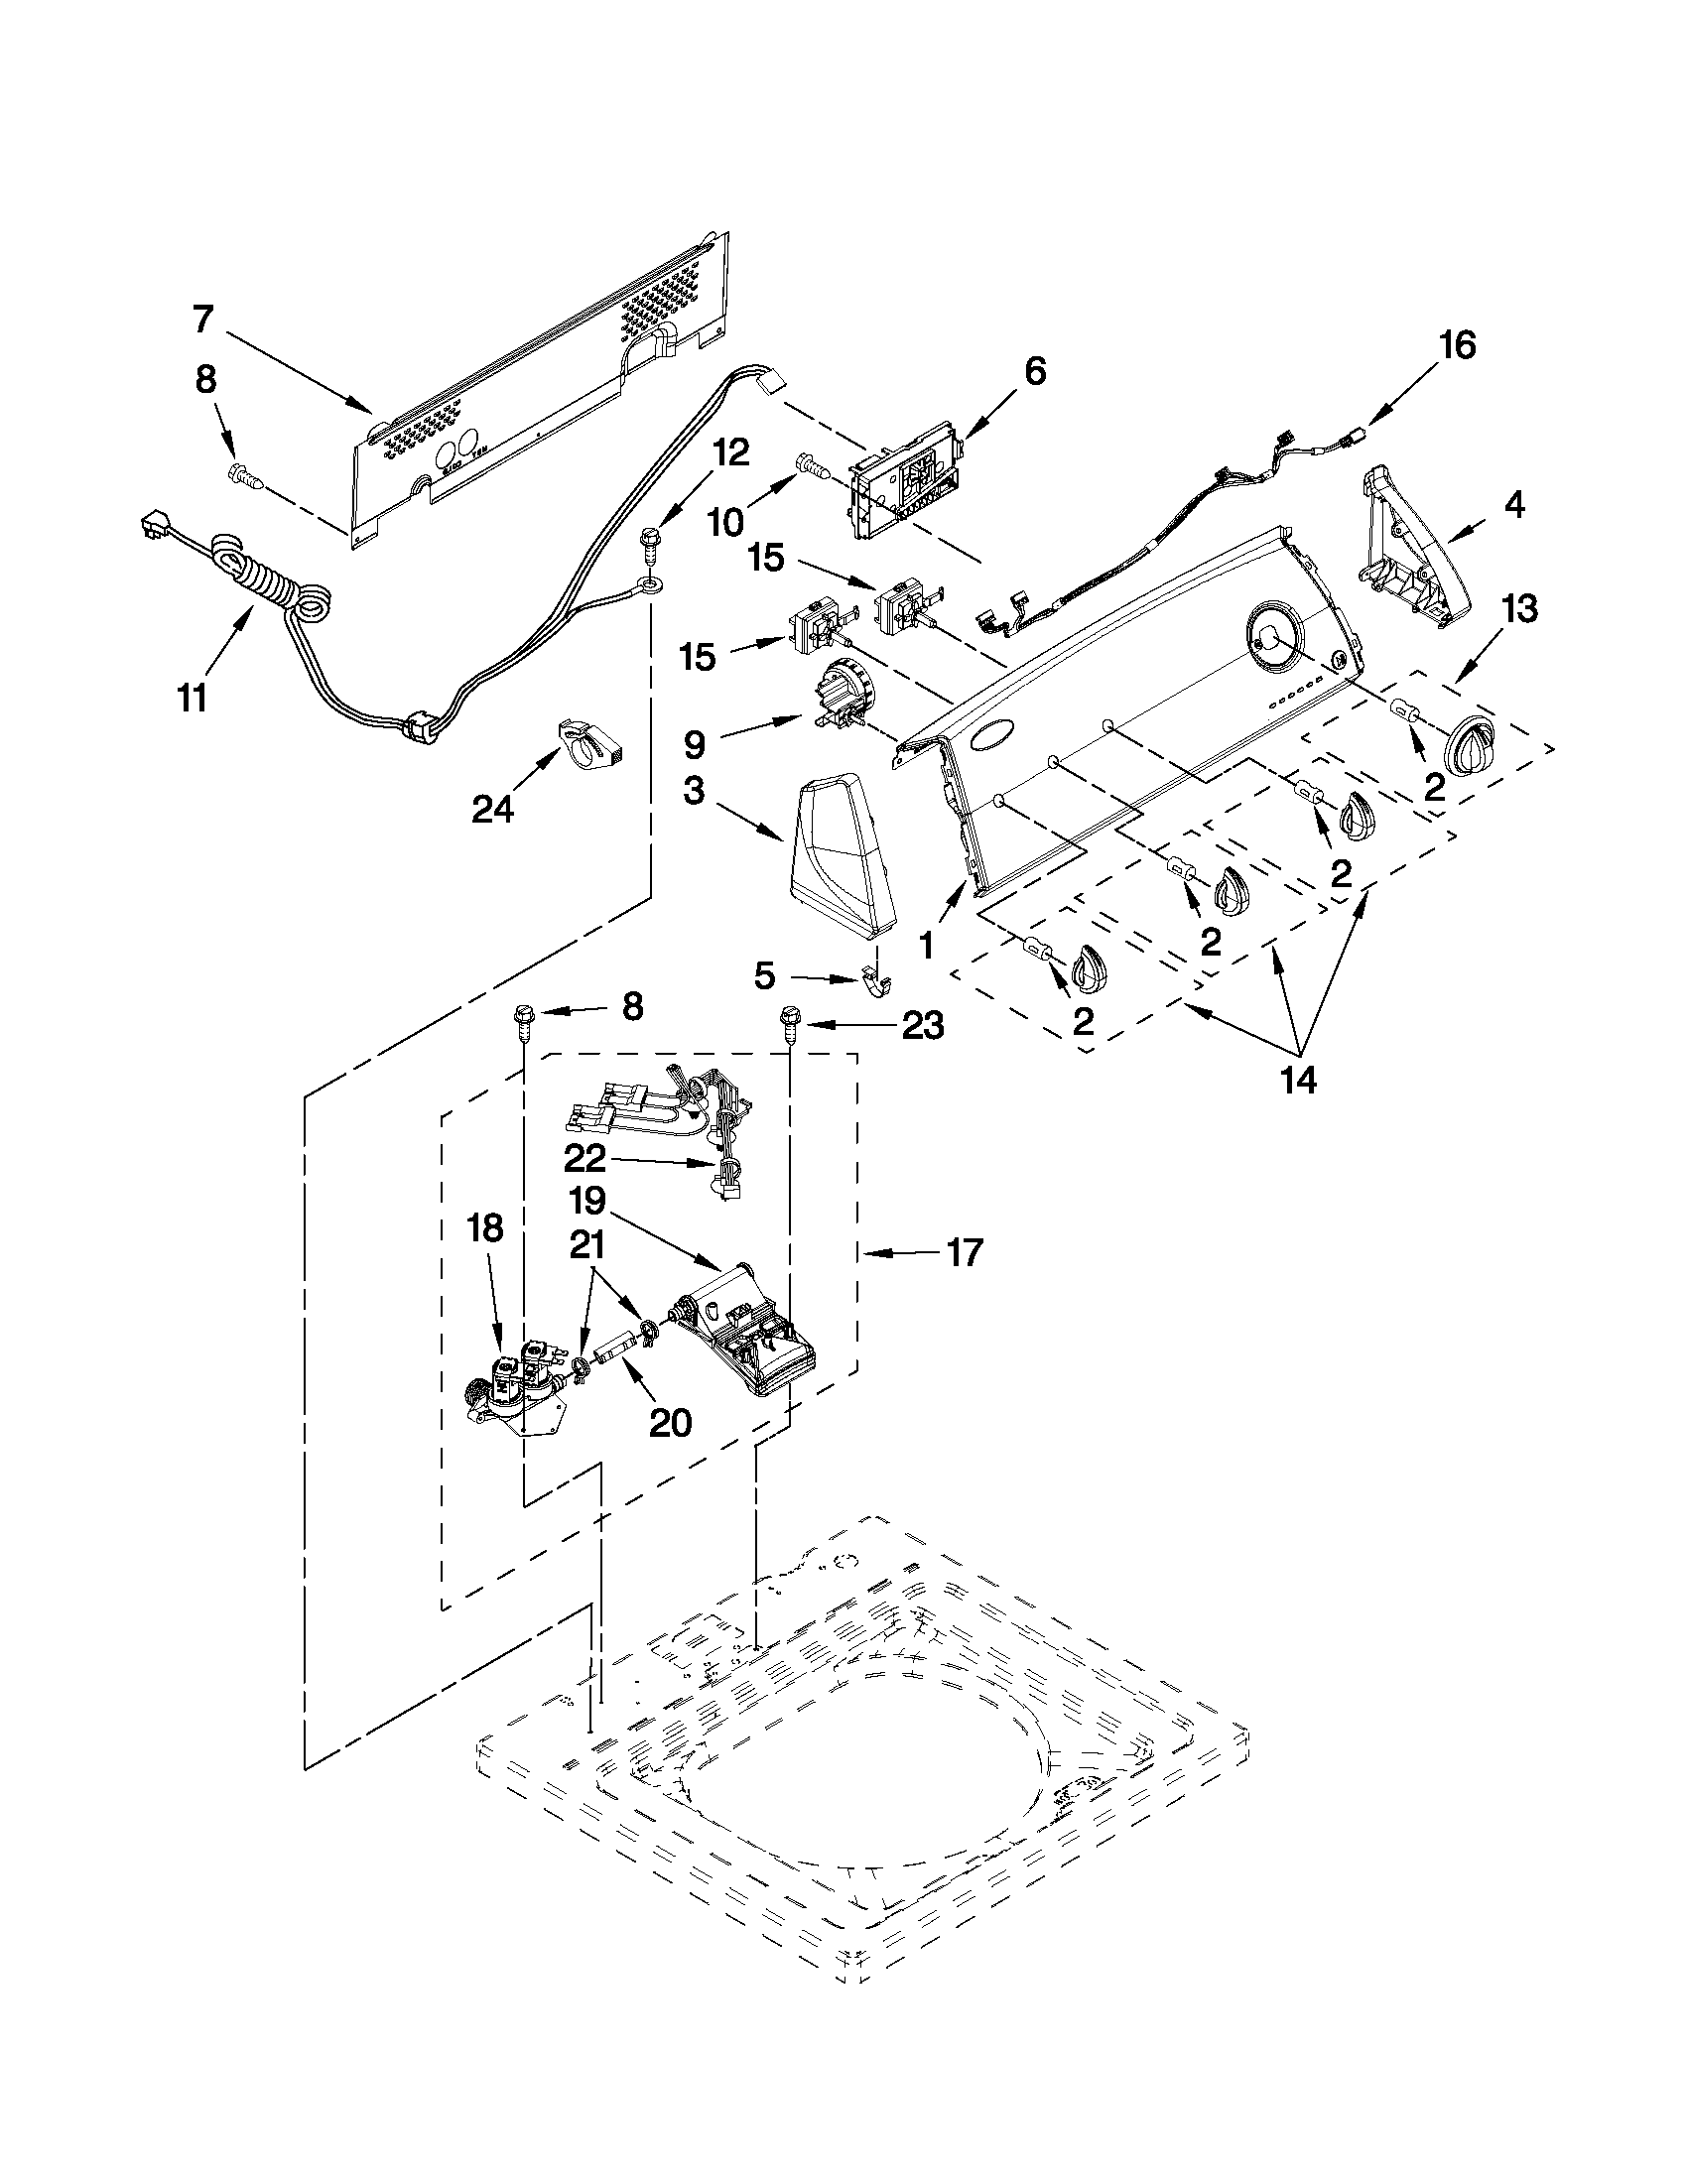 CONSOLE AND WATER INLET PARTS Diagram & Parts List for